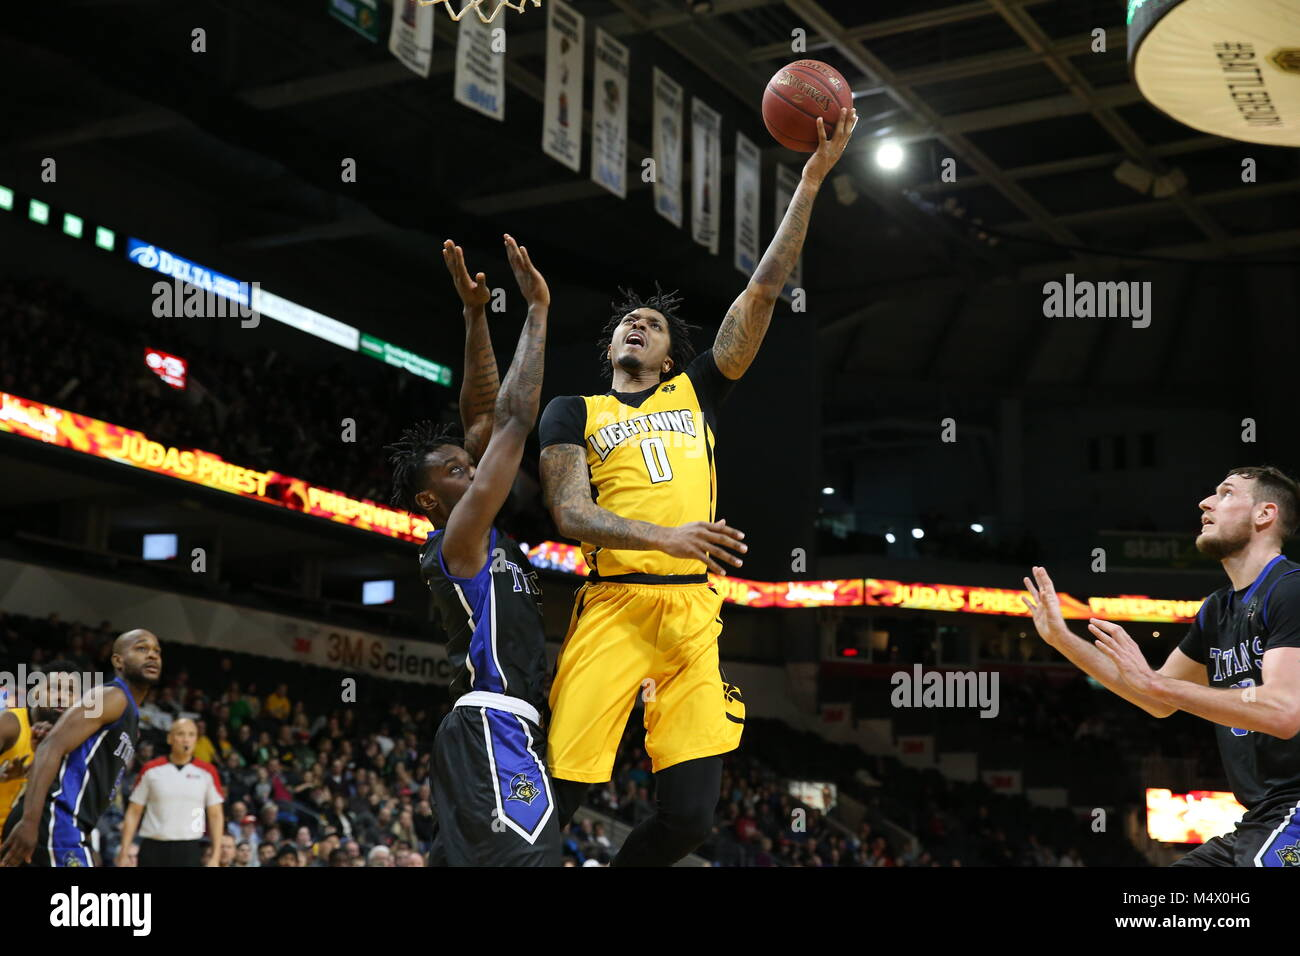 London Ontario, Canada. 18th Feb, 2018. The London Lightning and the KW Titans played a very close game all the - Stock Image